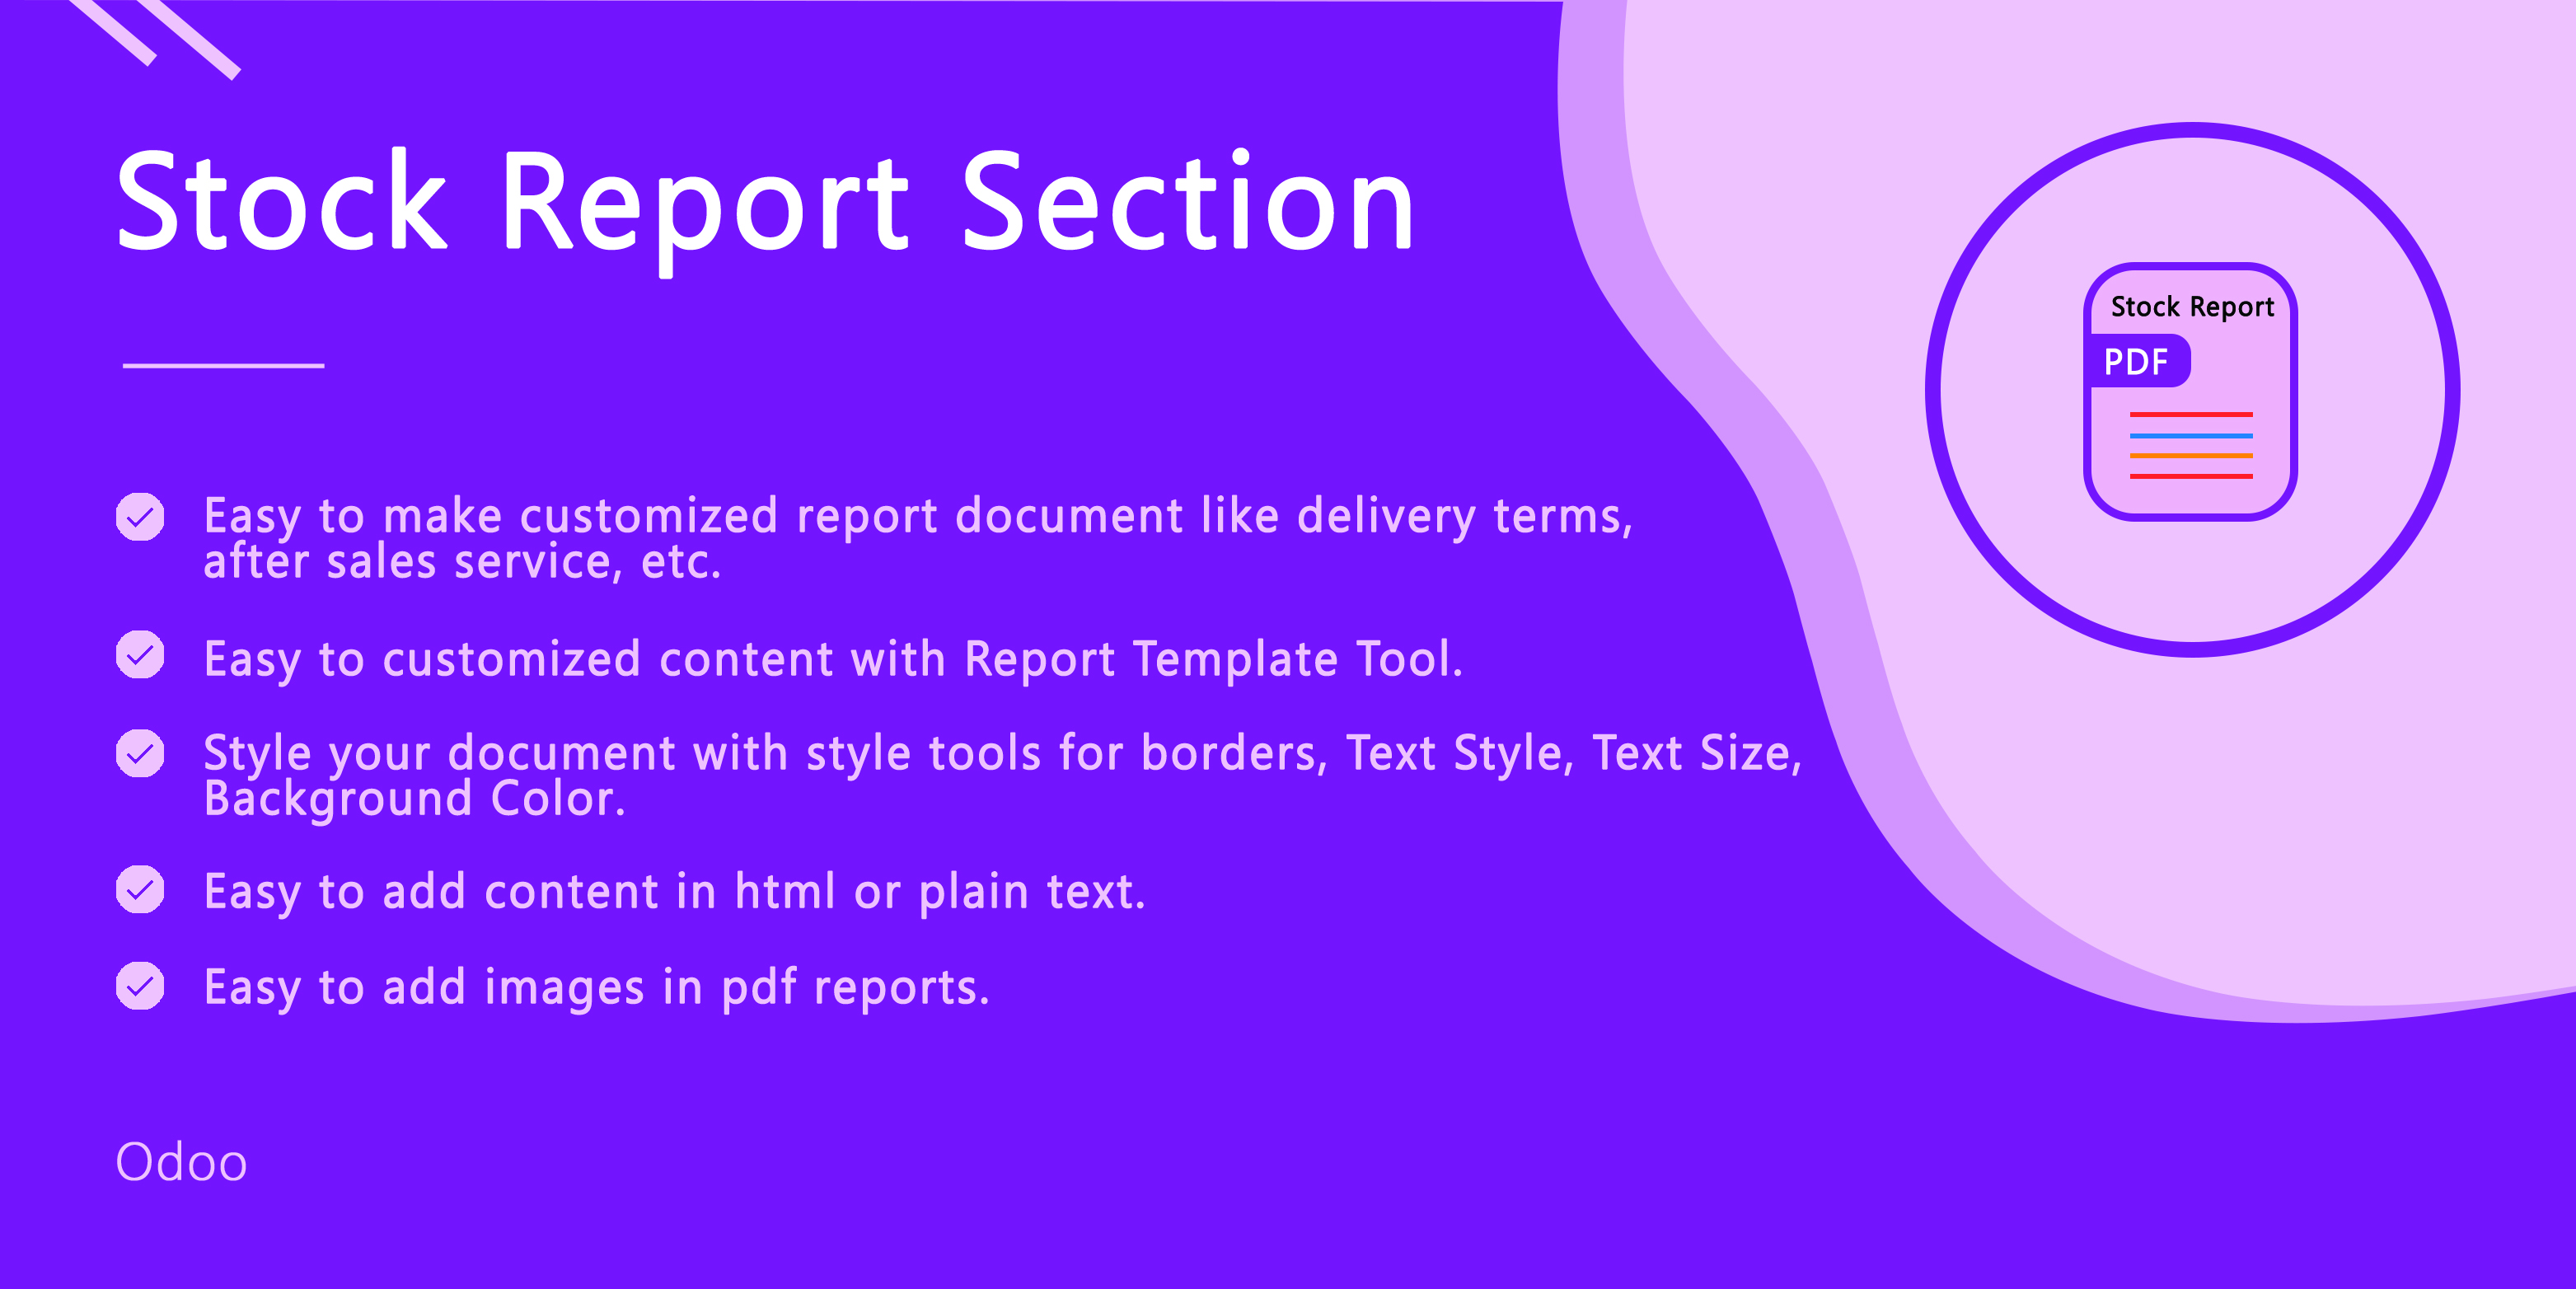 Stock Reprot Section